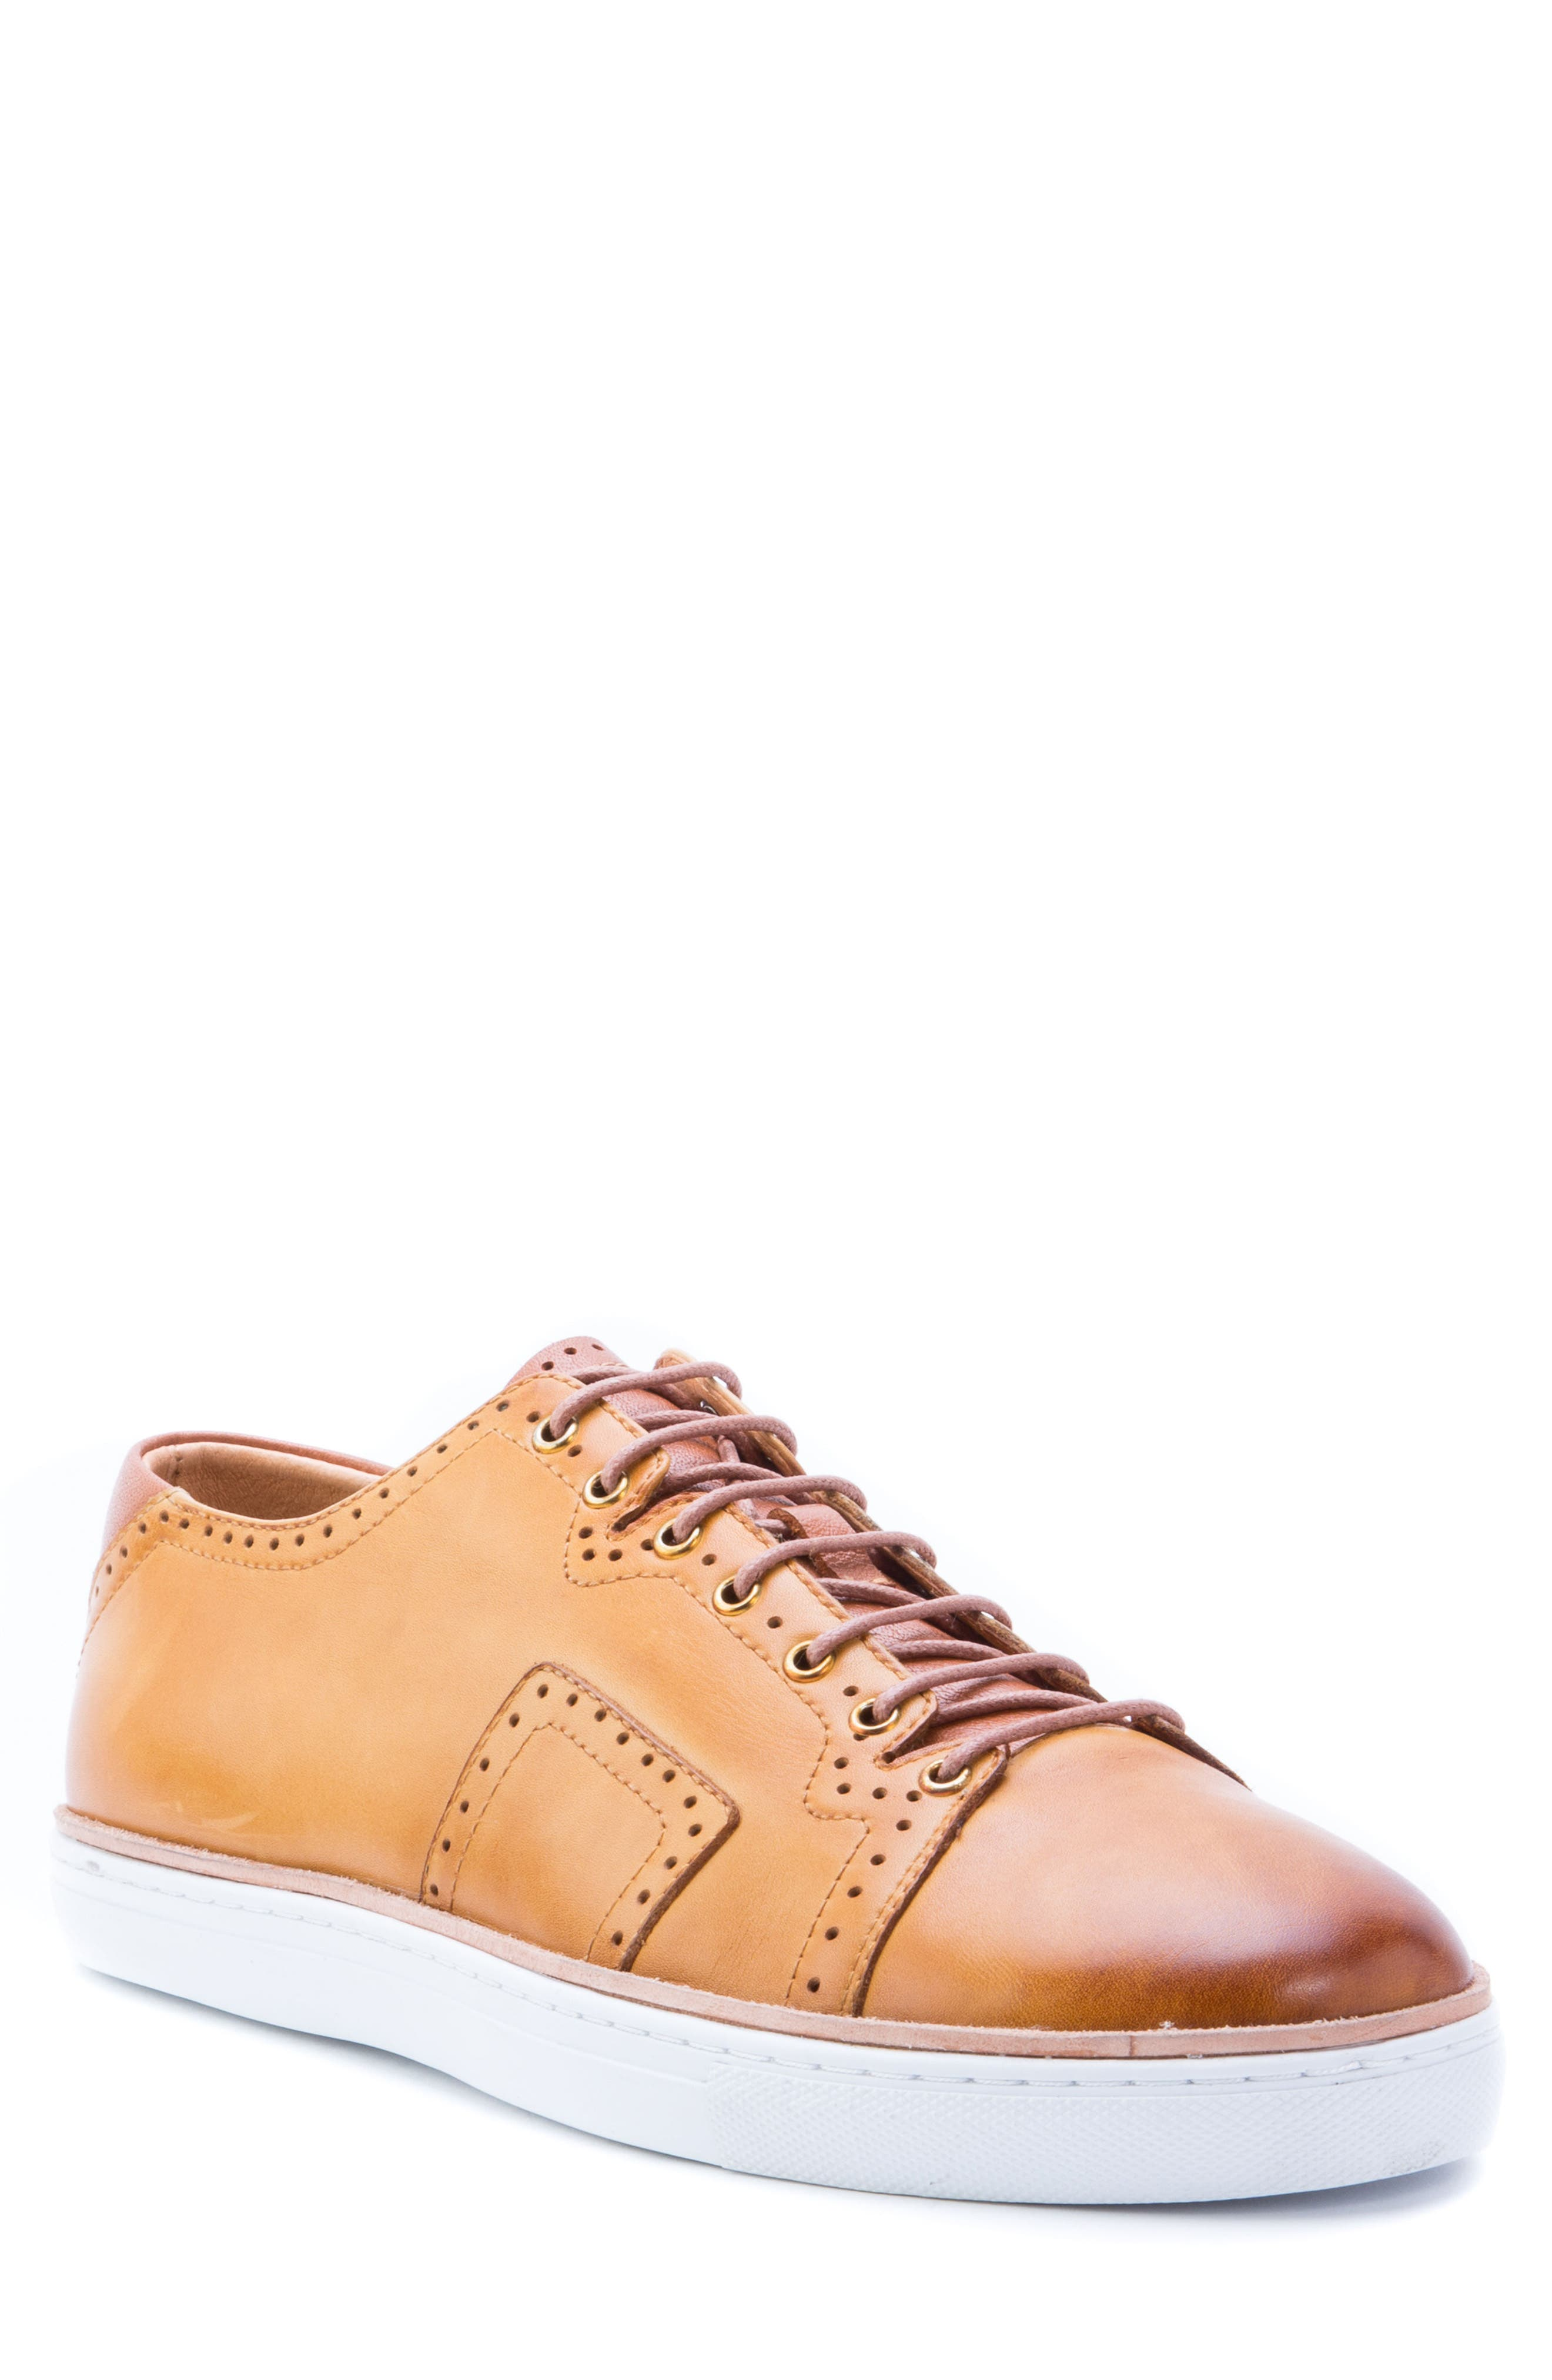 Marti Low Top Sneaker,                         Main,                         color, Cognac Leather